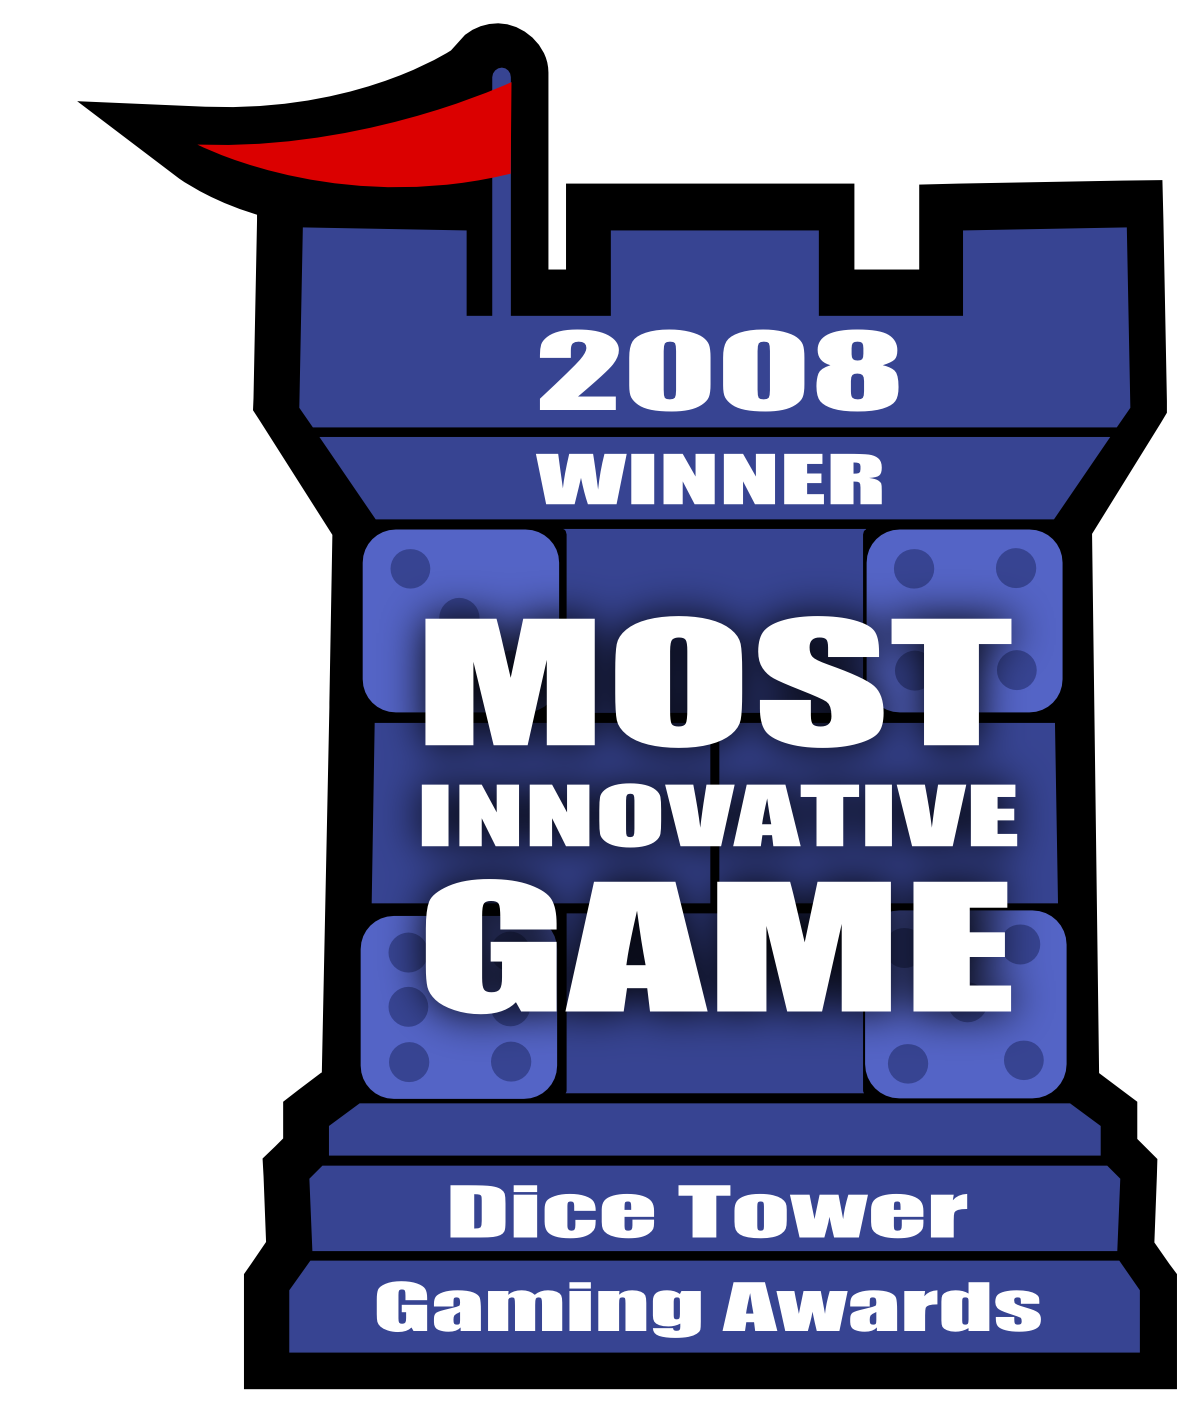 2008 Most Innovative Game Winner